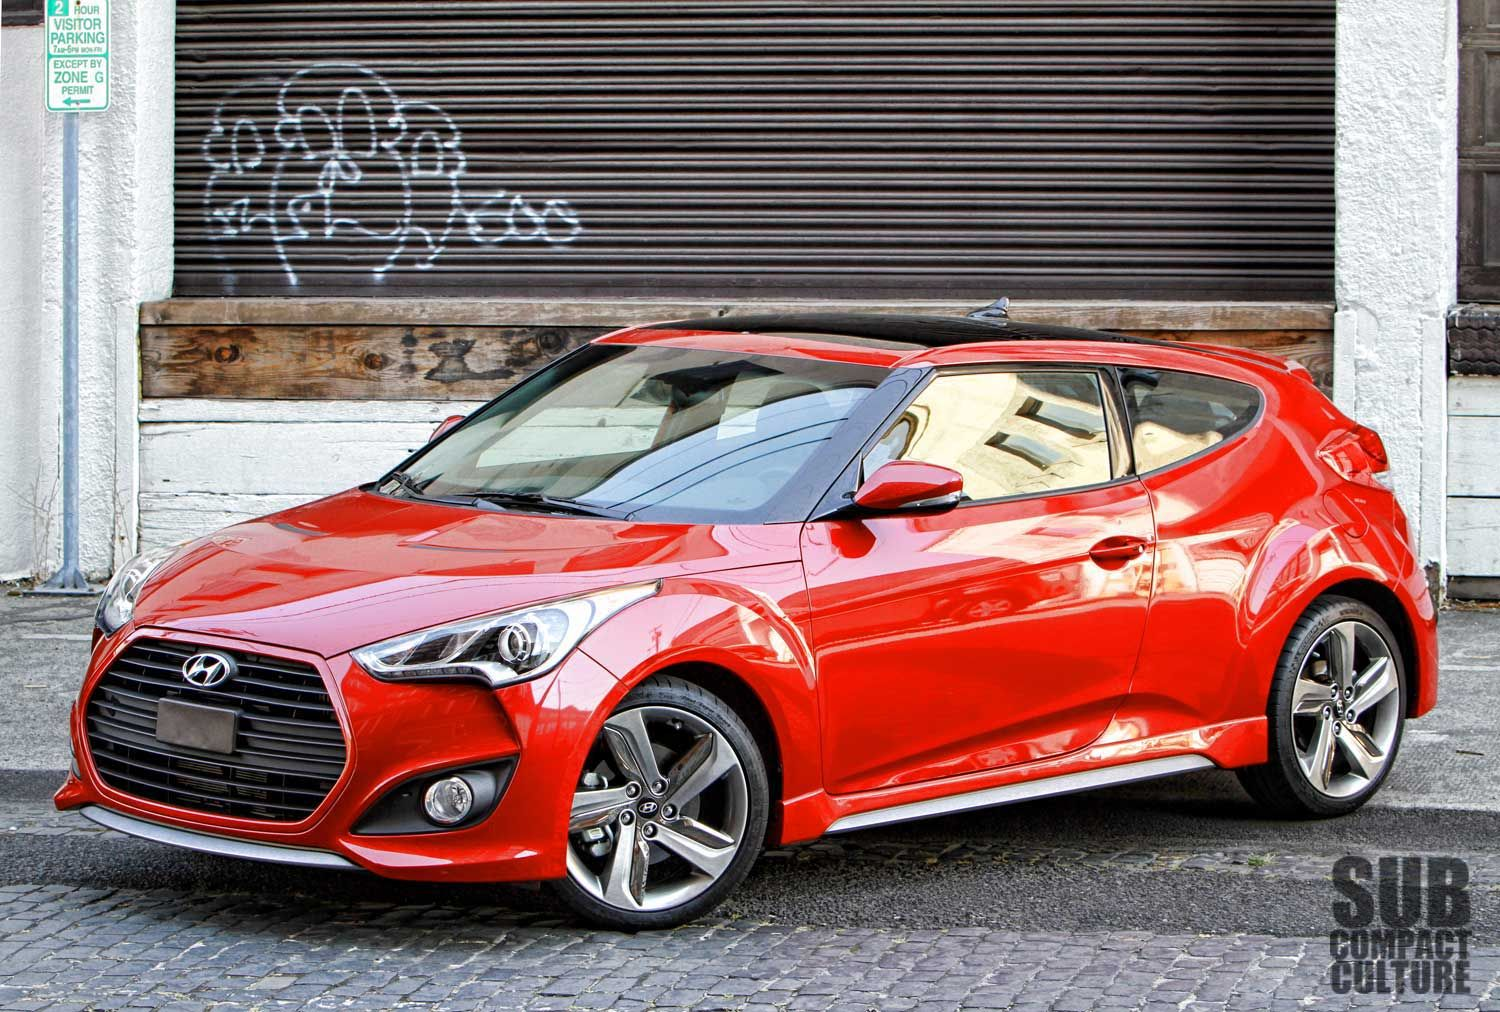 Hyundai Veloster Turbo 4 My New Car I Love It Hyundai